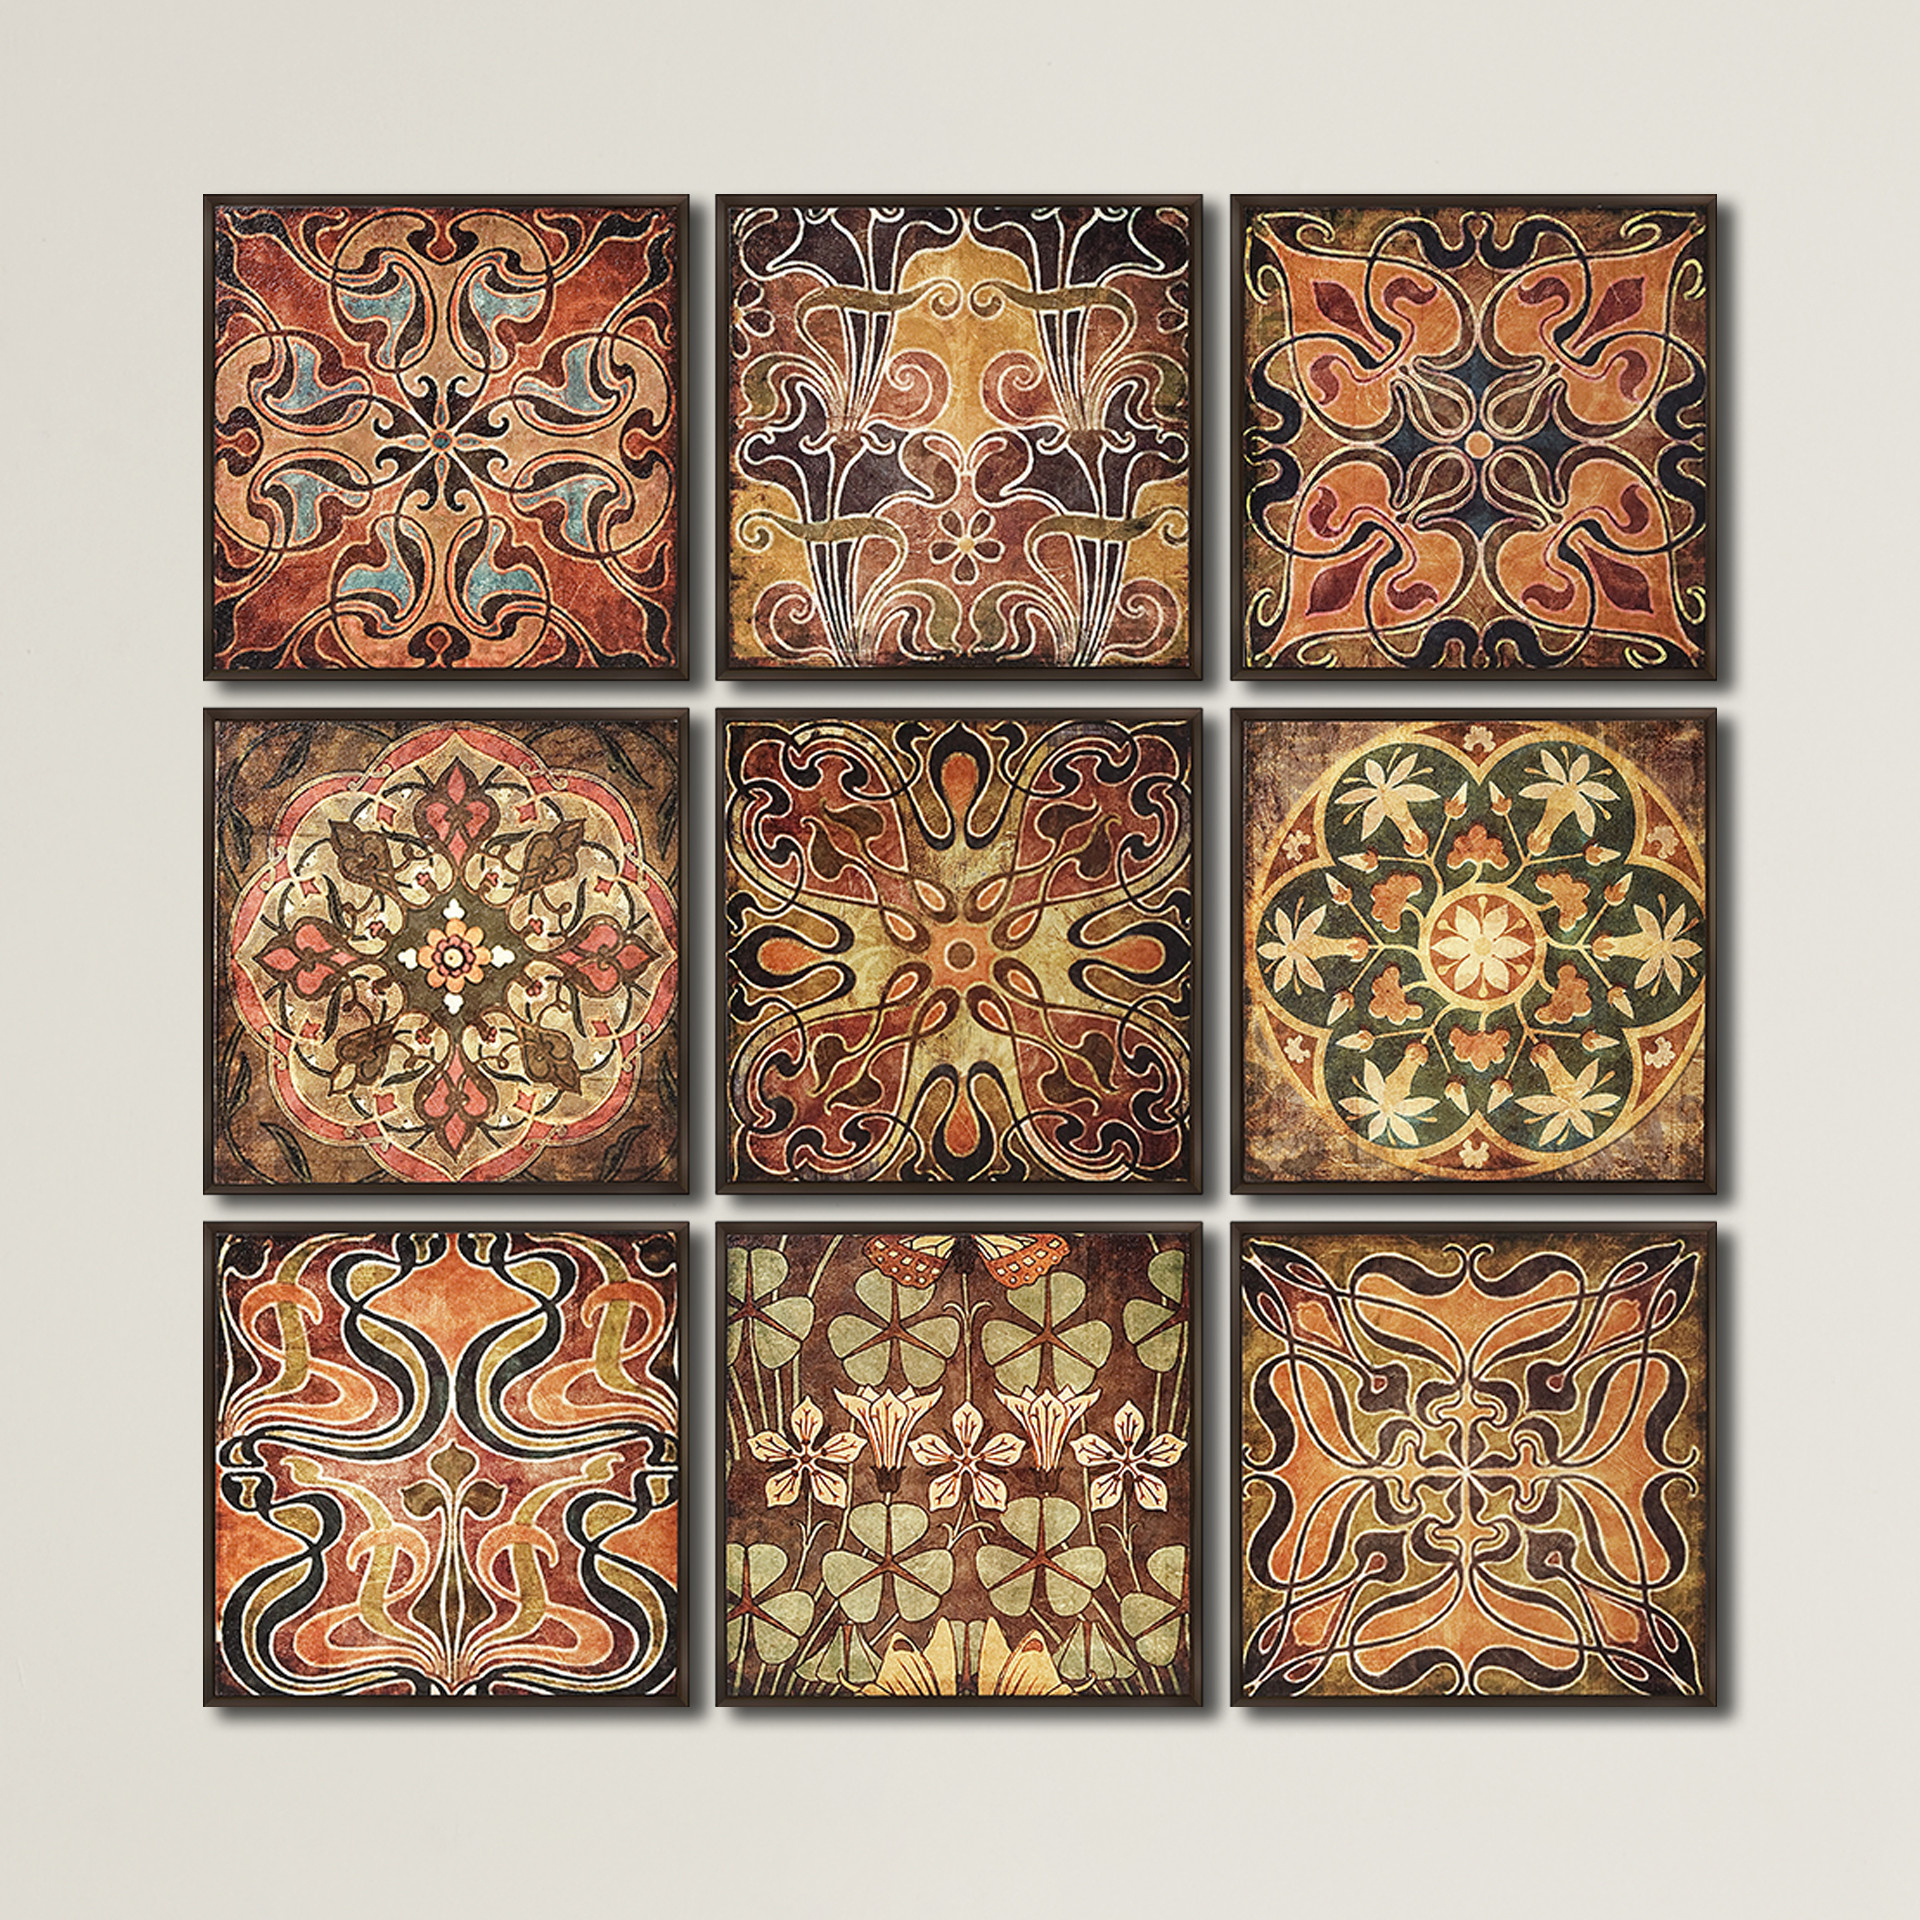 Well Liked Mariposa 9 Piece Wall Decor Pertaining To 9 Piece Wall Art – Pmpresssecretariat (Gallery 9 of 20)